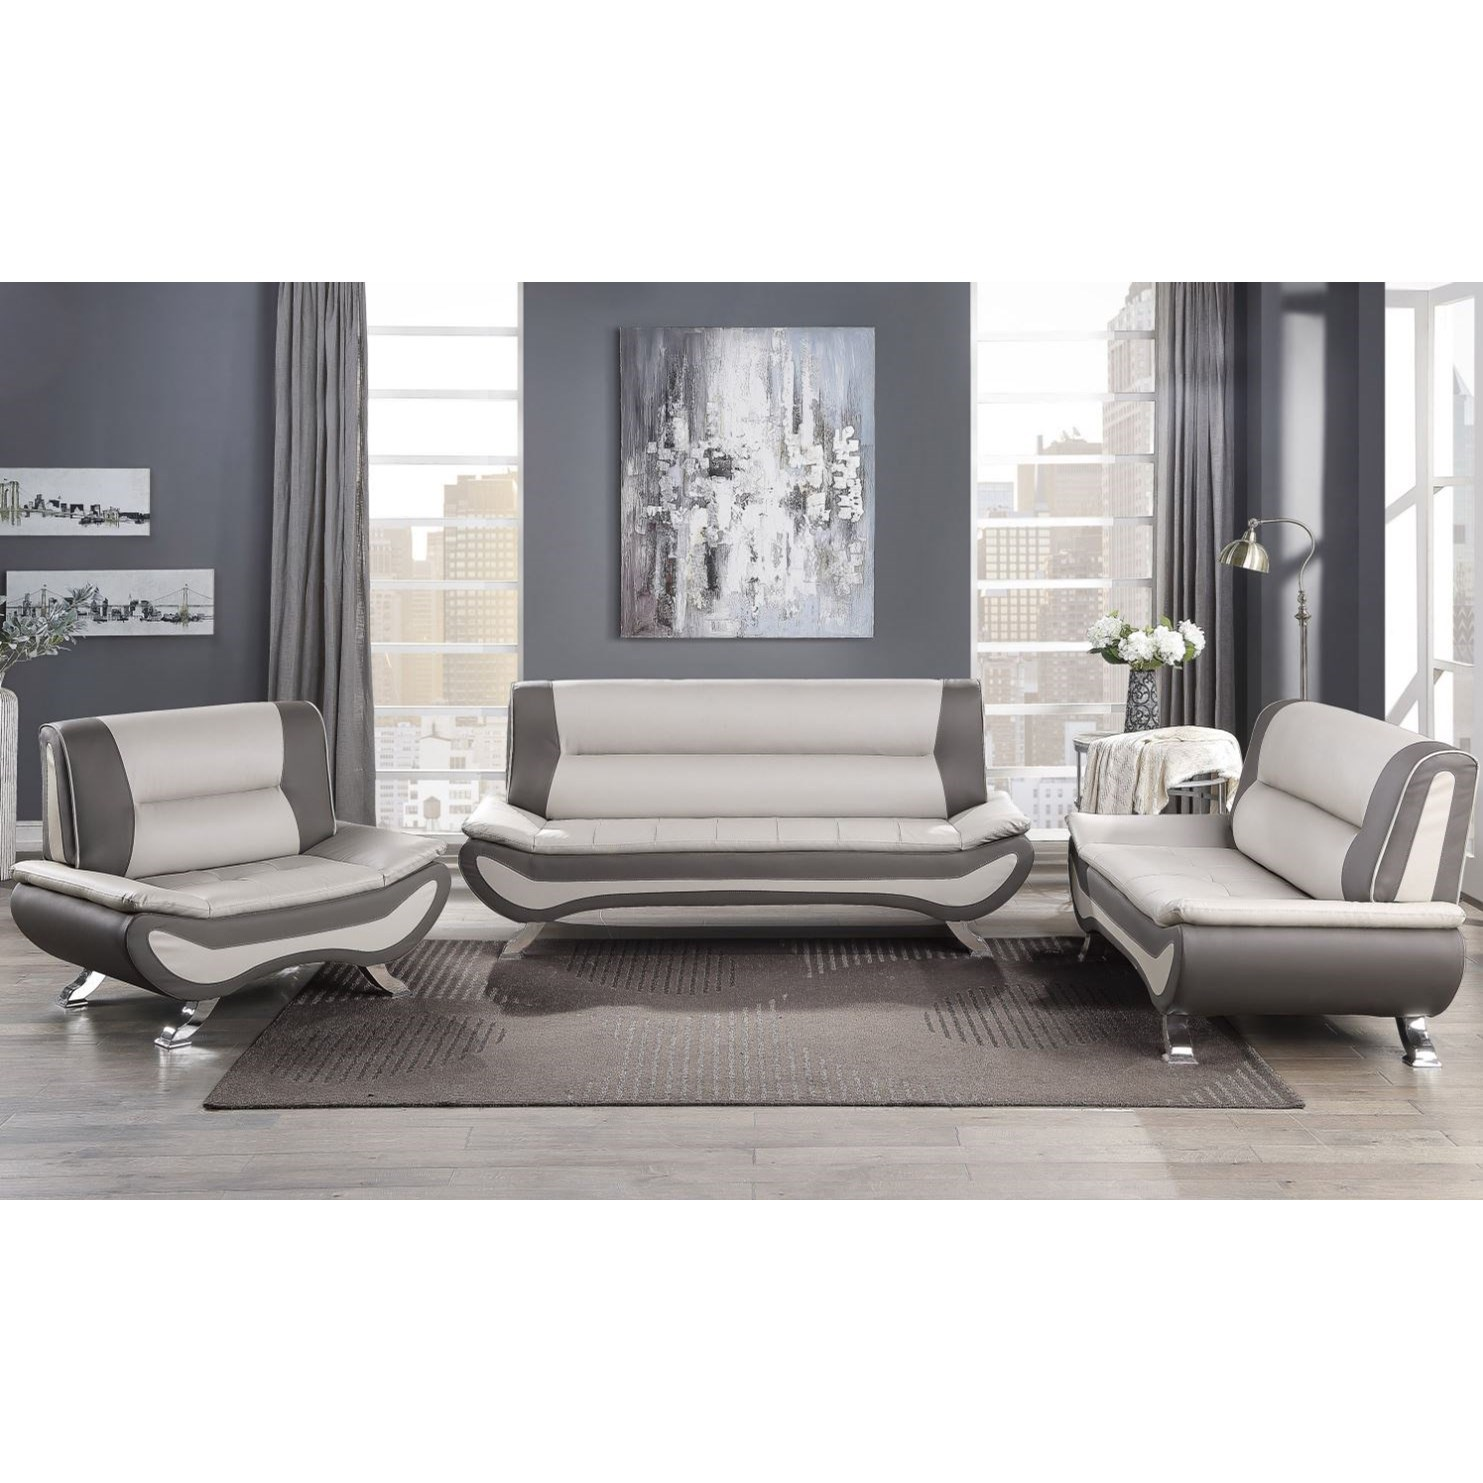 Veloce Stationary Living Room Group by Homelegance at Lindy's Furniture Company